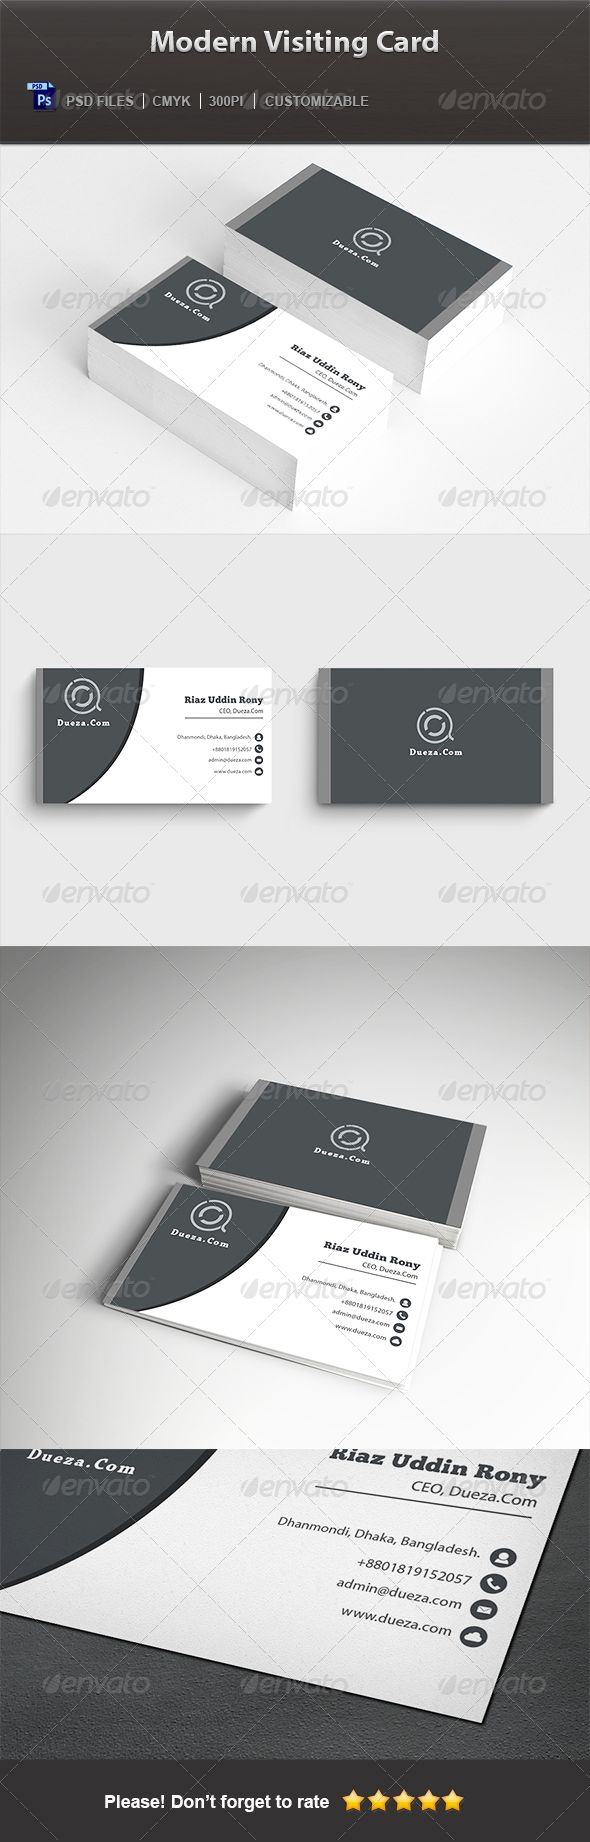 Modern Visiting Card — Photoshop PSD #standard #cool • Available here → https://graphicriver.net/item/modern-visiting-card/5742138?ref=pxcr